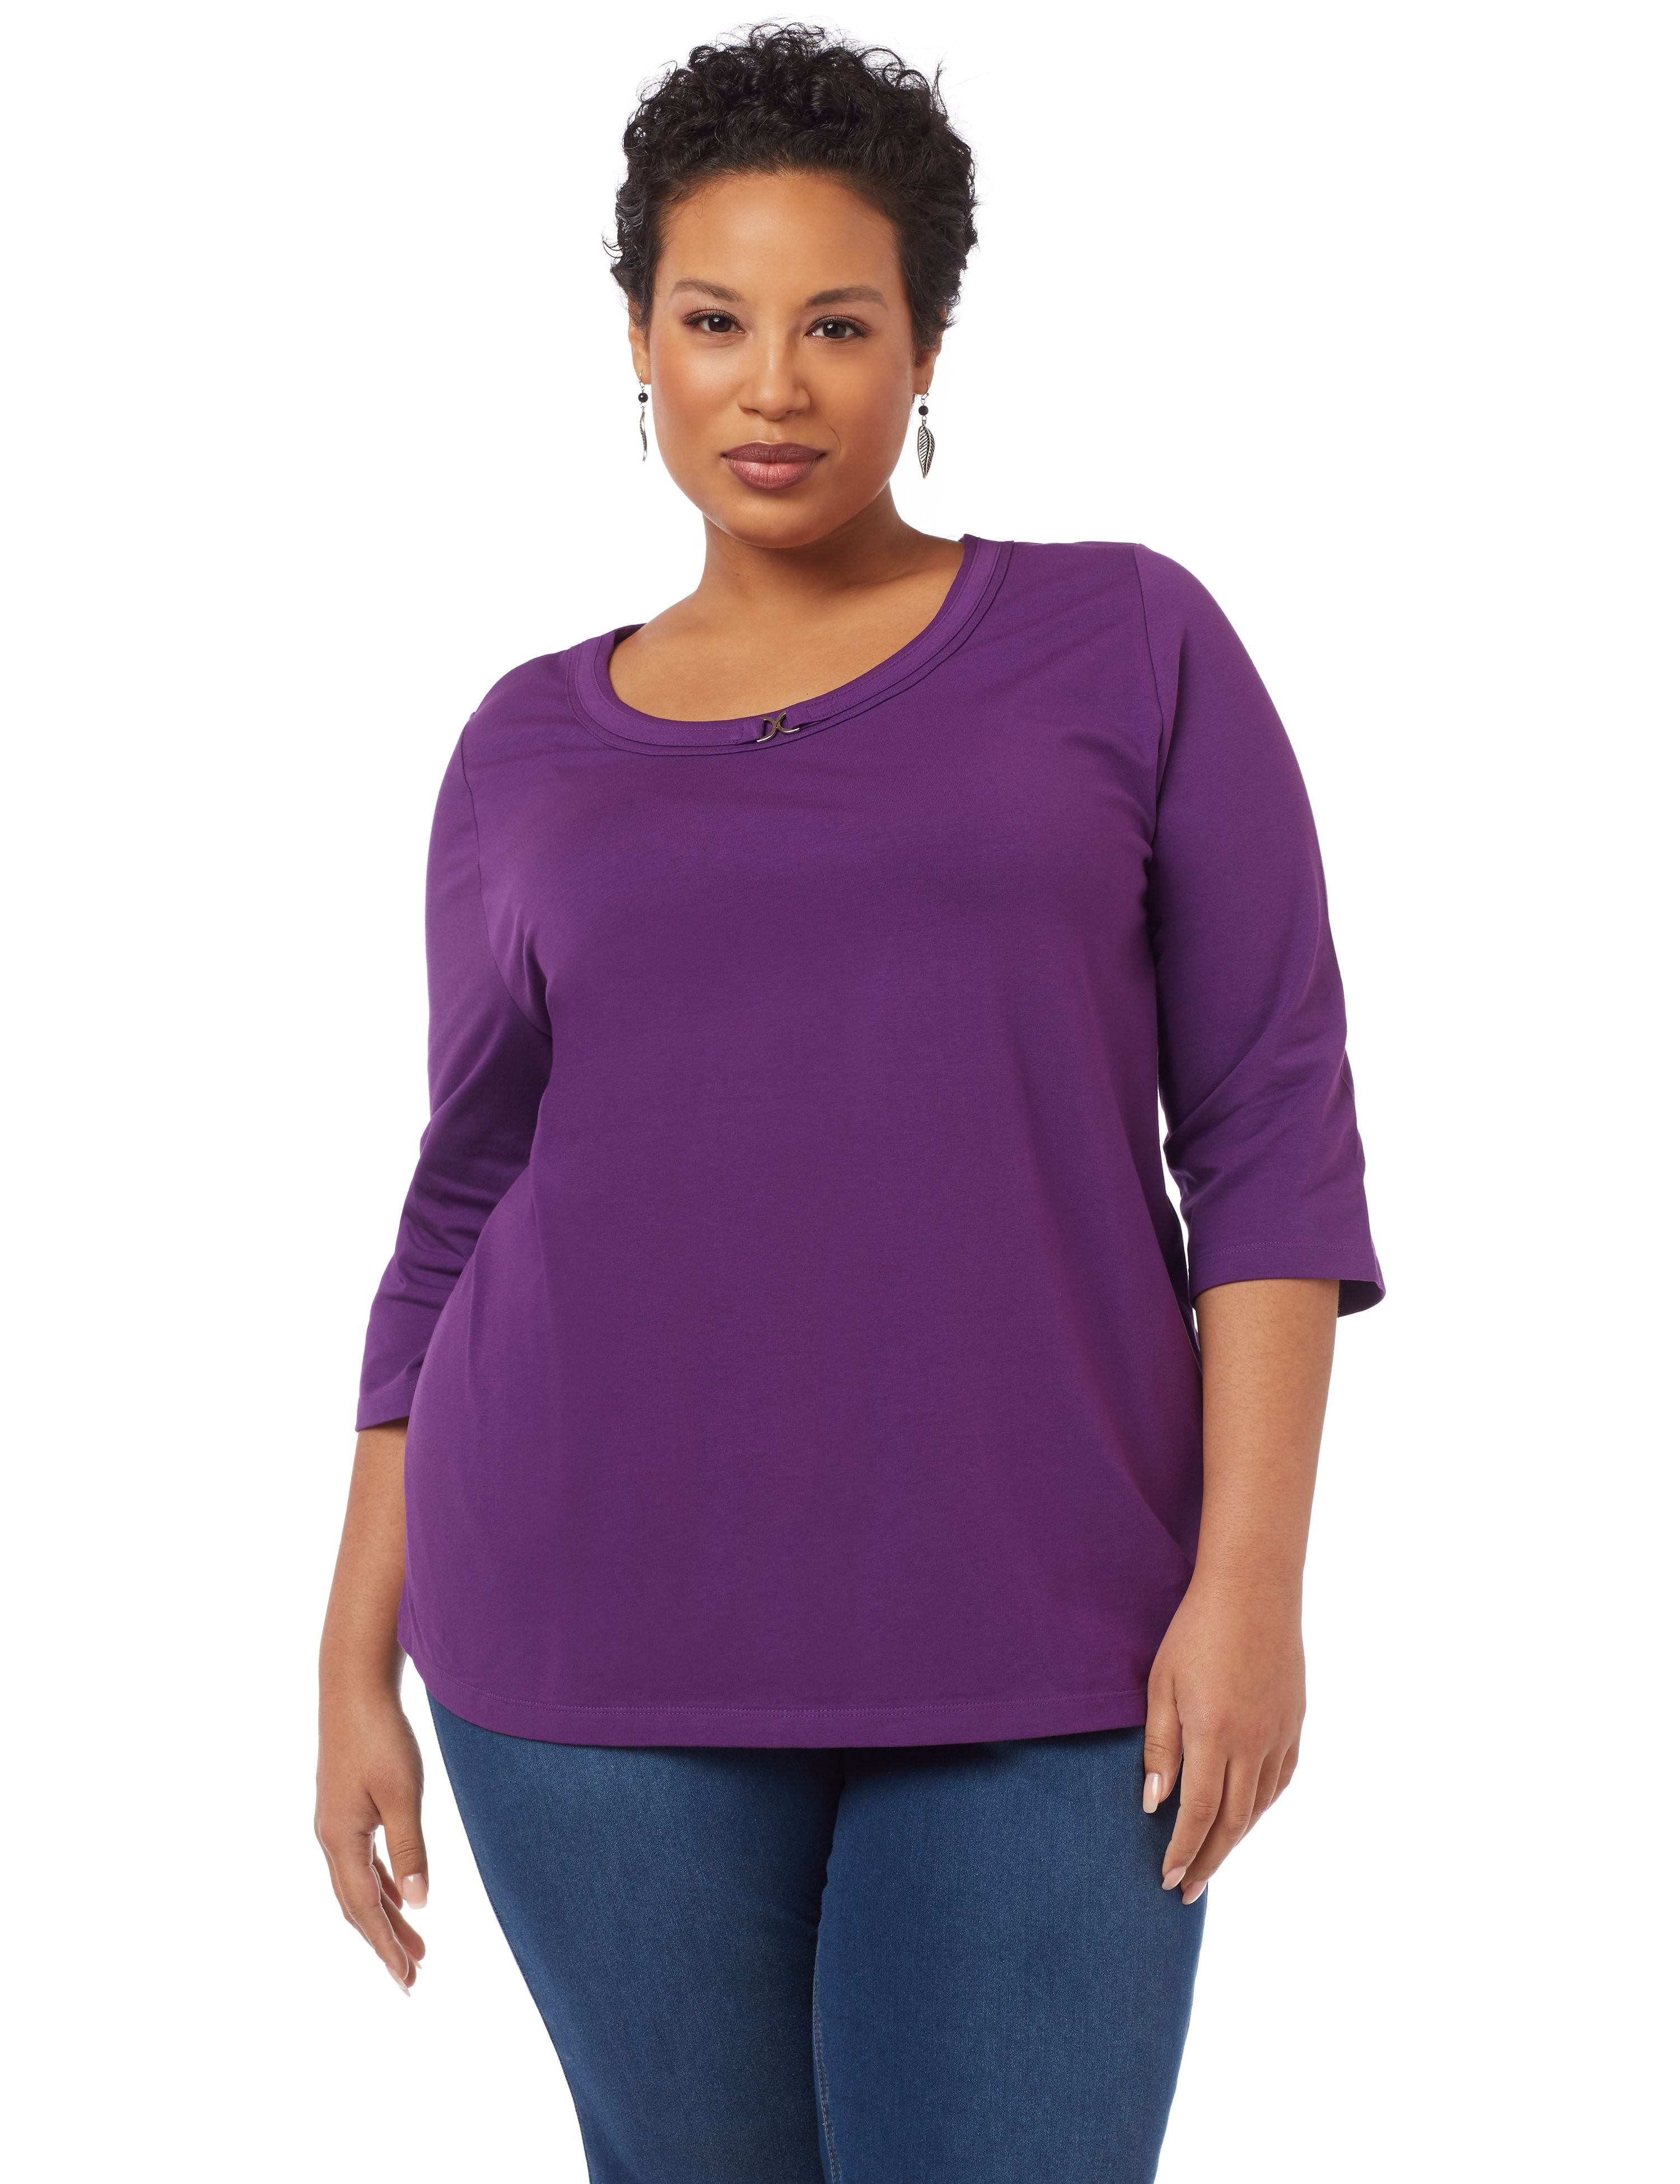 Suprema Accent Tee 1087926-3QSlv Scoop Neck W/ CF Hard MP-300098101